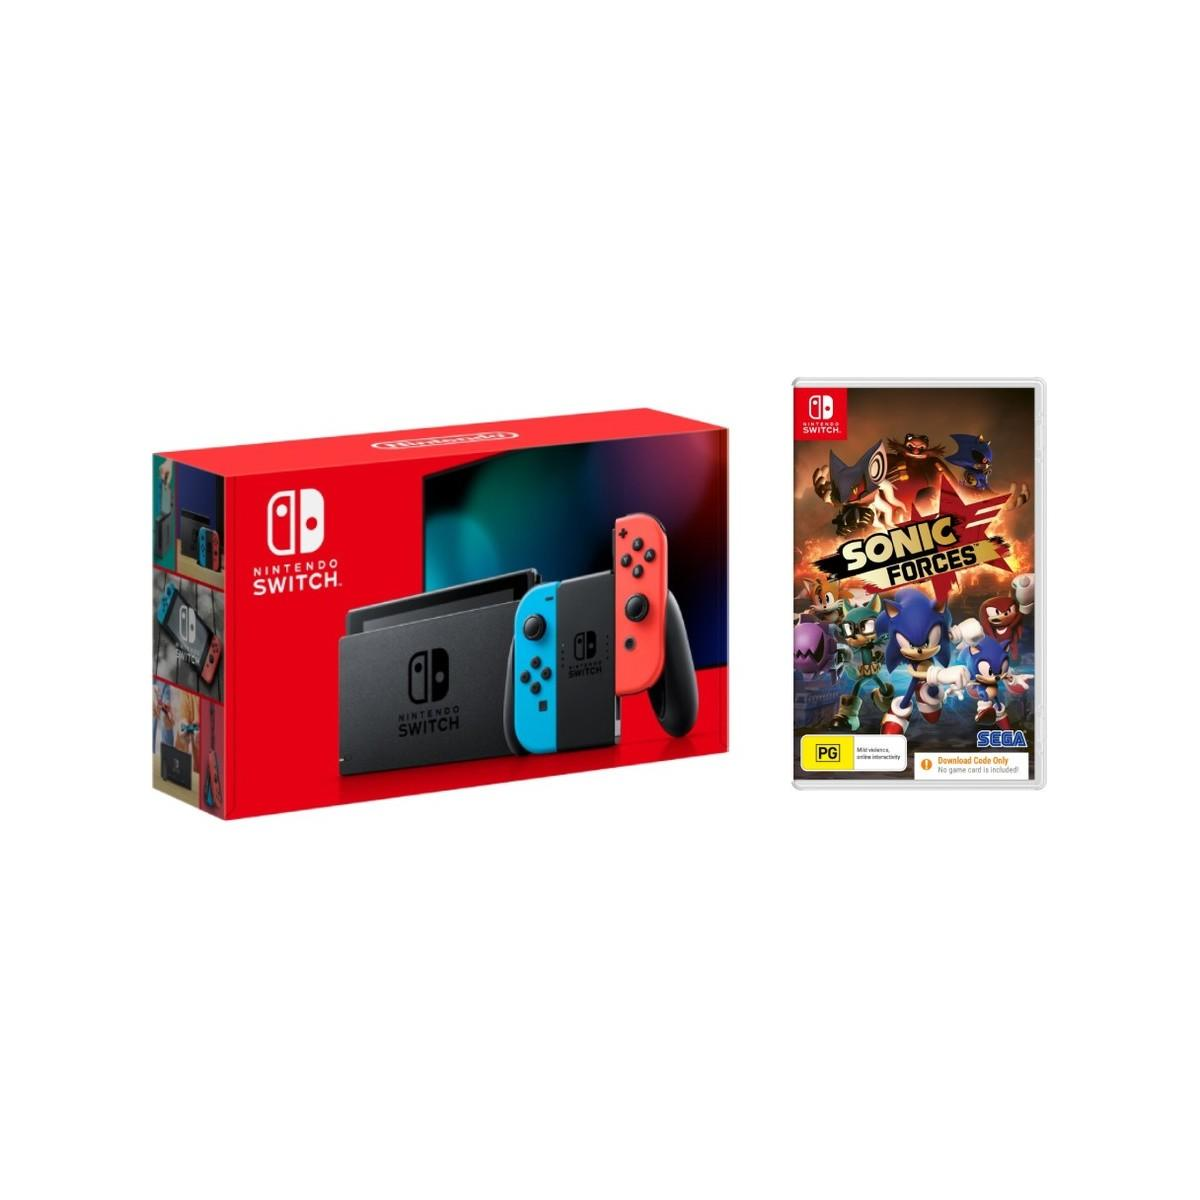 Nintendo Switch Console Neon + Sonic Forces Download Code Bundle